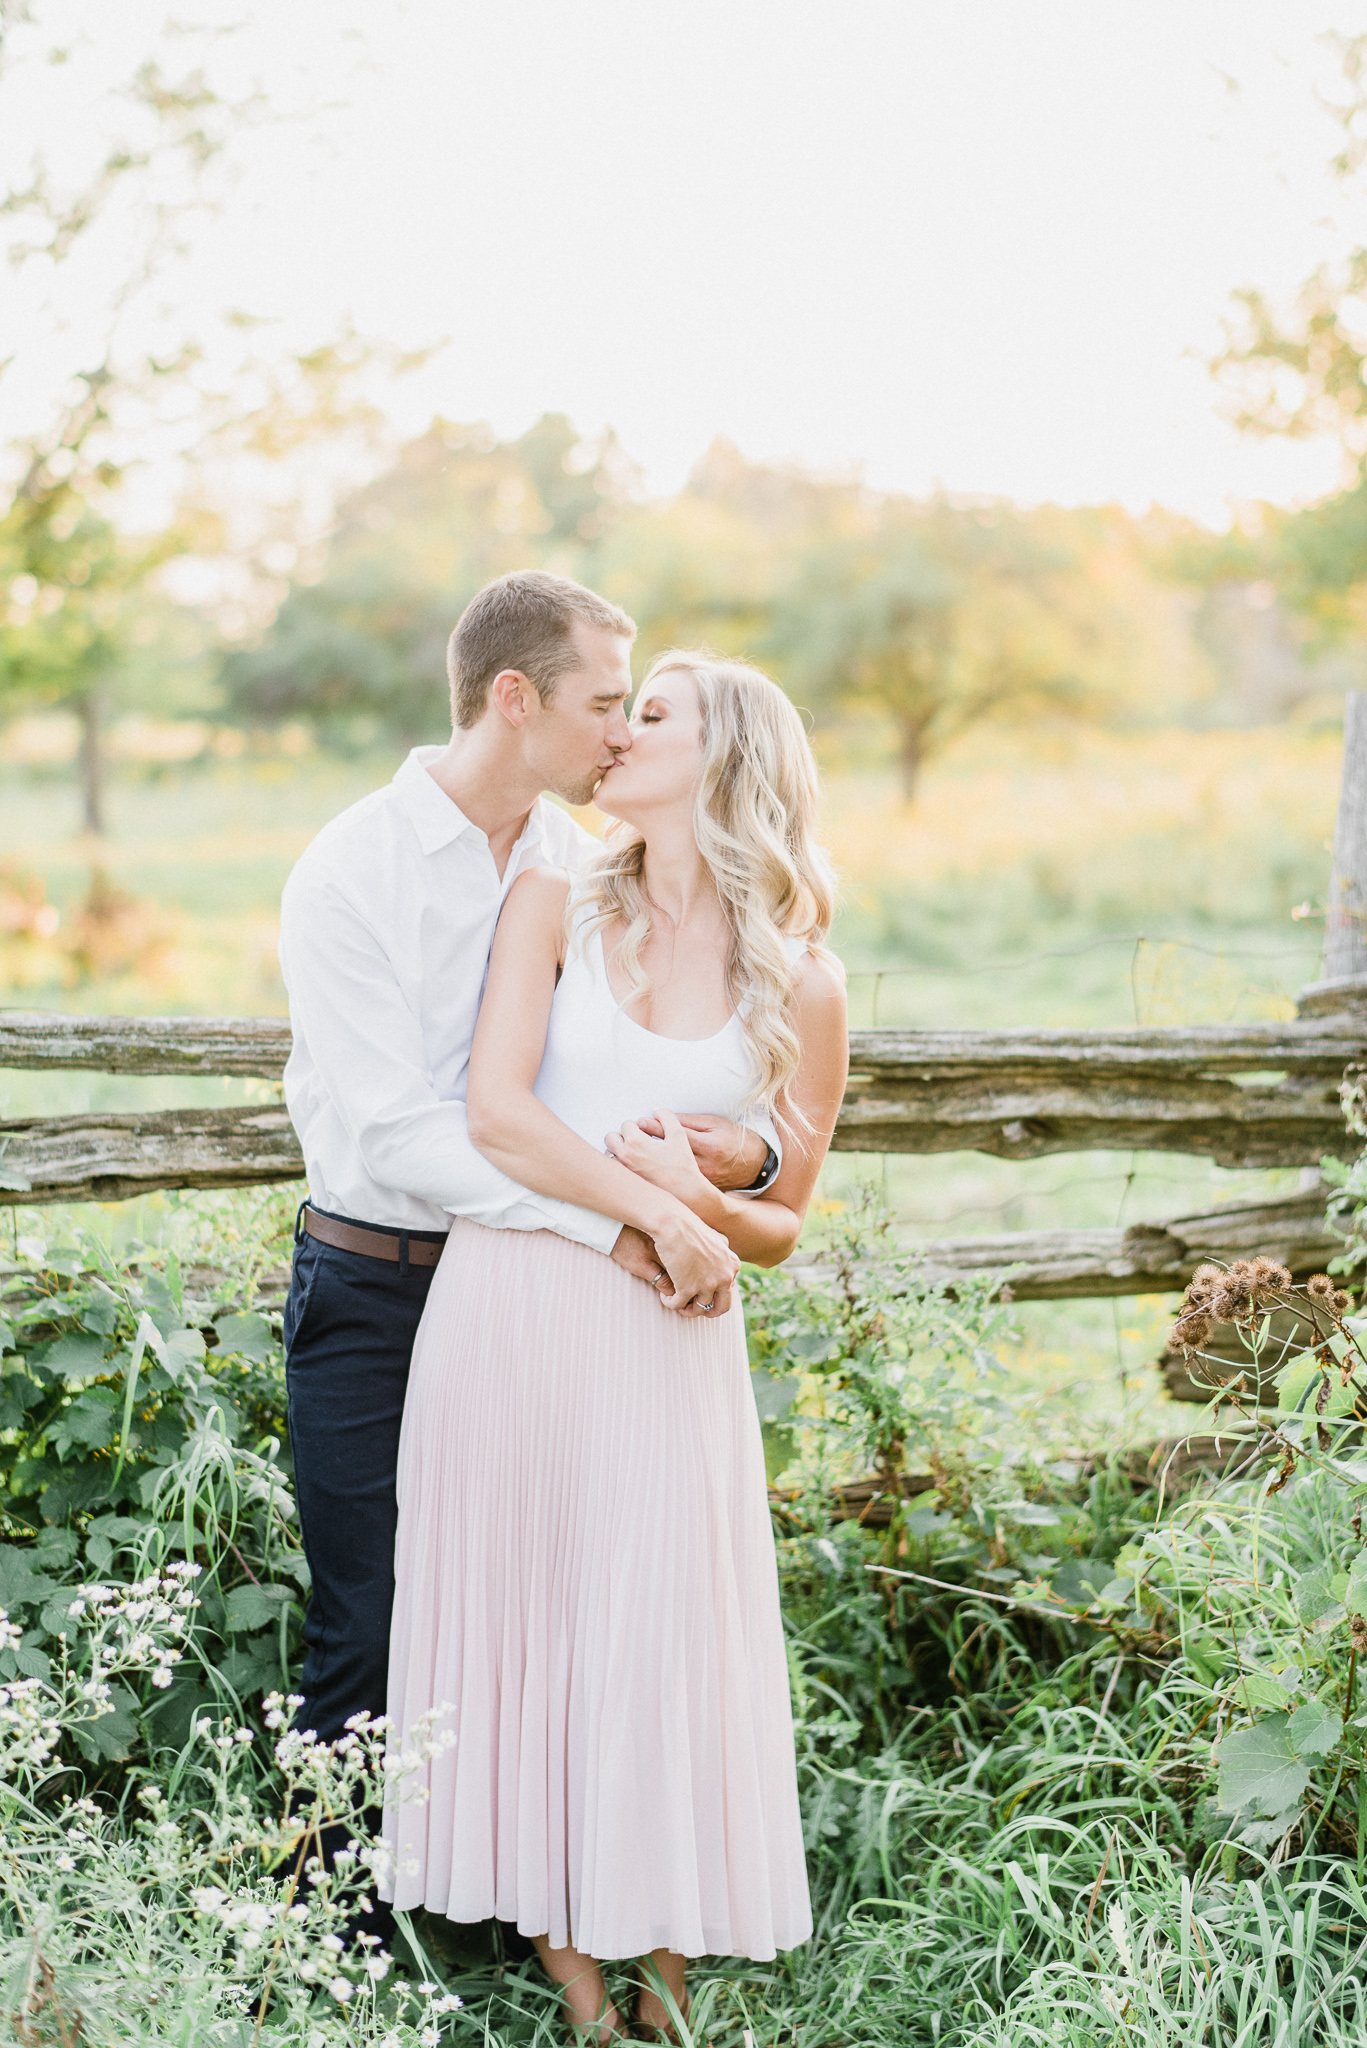 Bronte Creek Provincial Park Engagement Photos by Jenn Kavanagh Photography